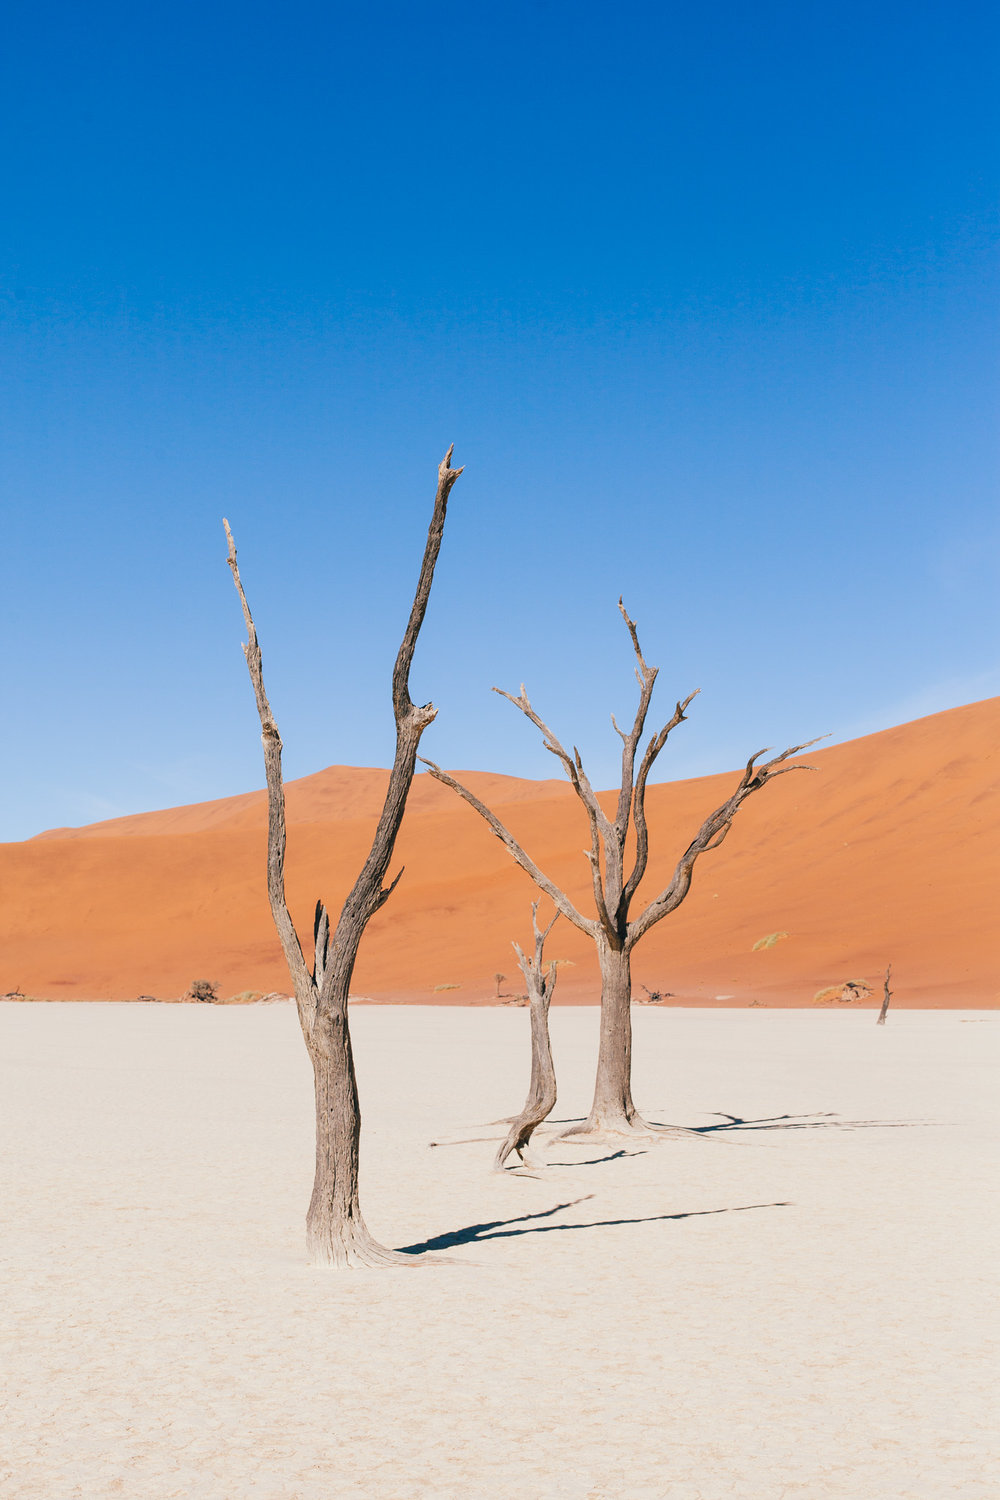 The remaining skeletons of  camel thorn trees , which are believed to have died 900 years ago. The intense sun has scorched them black, and because it is so dry the wood doesn't decompose.